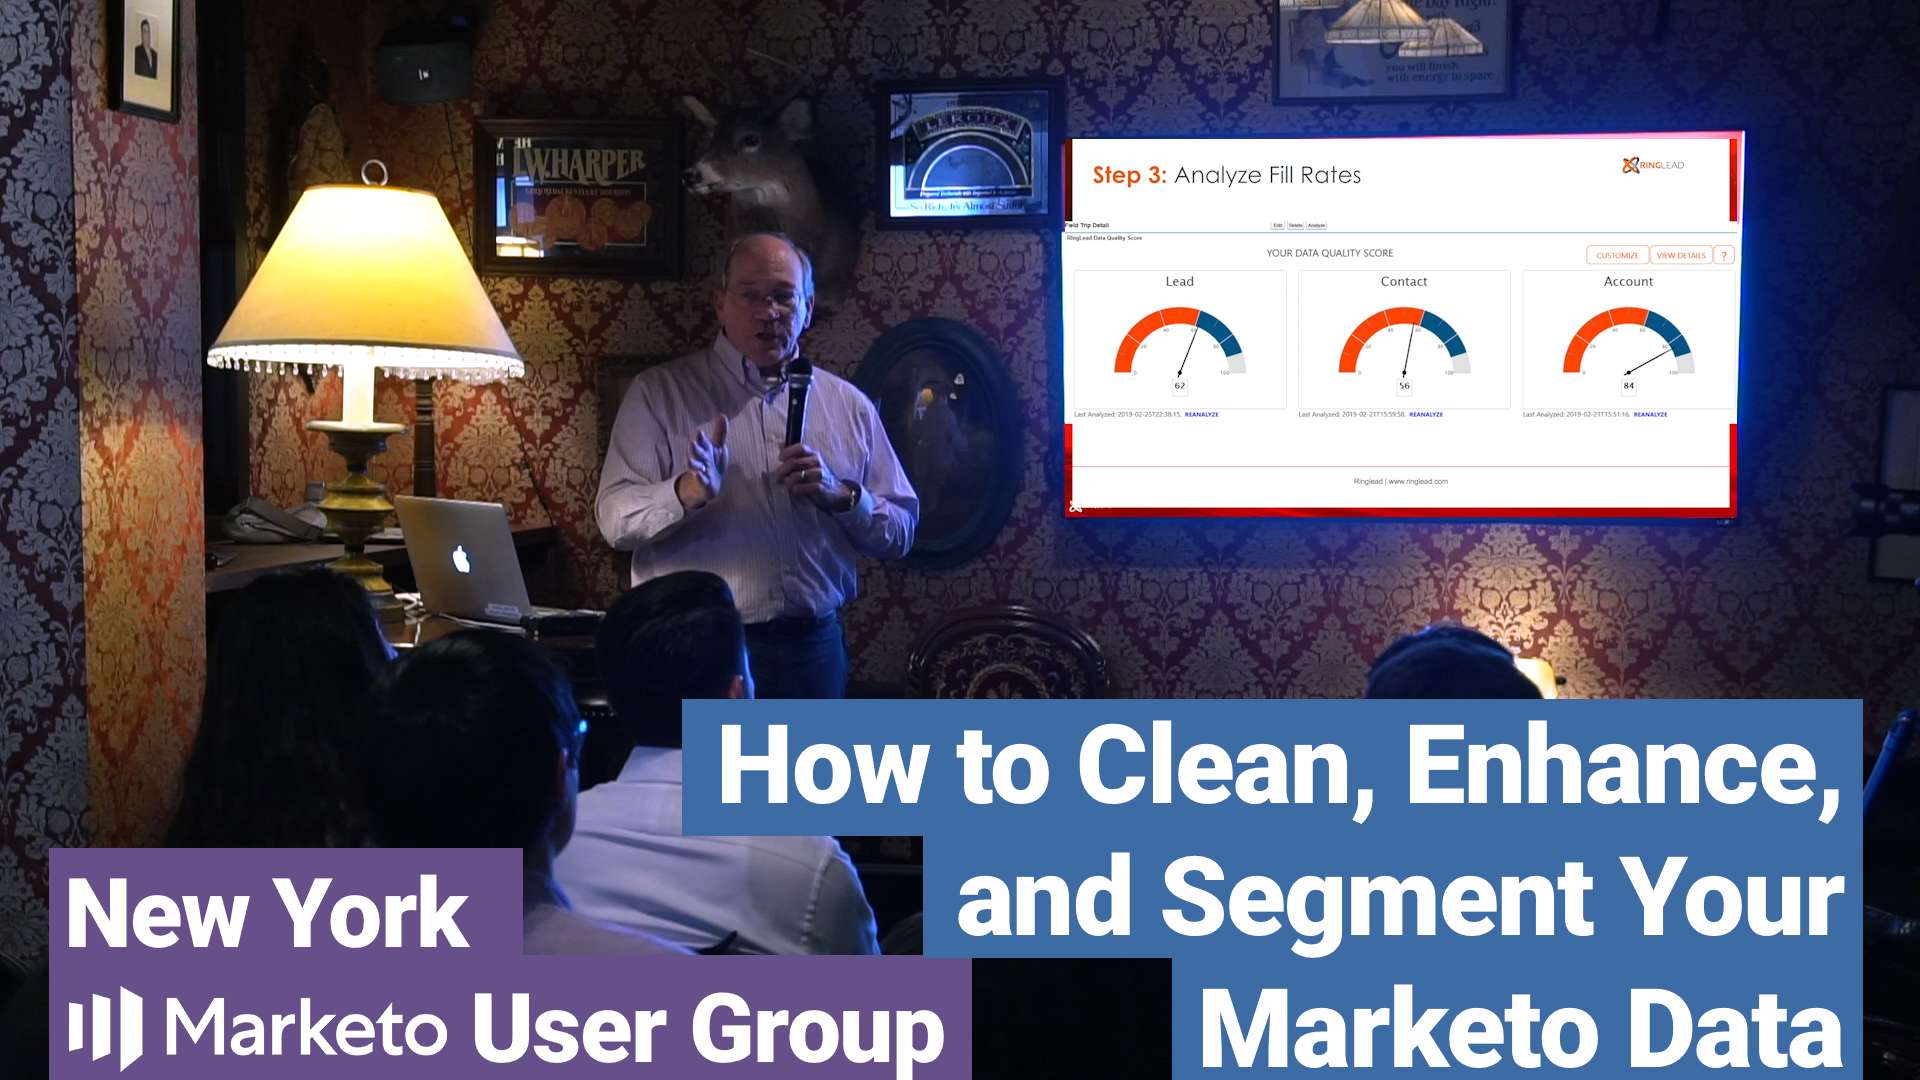 How to Clean, Enhance, and Segment Your Marketo Data